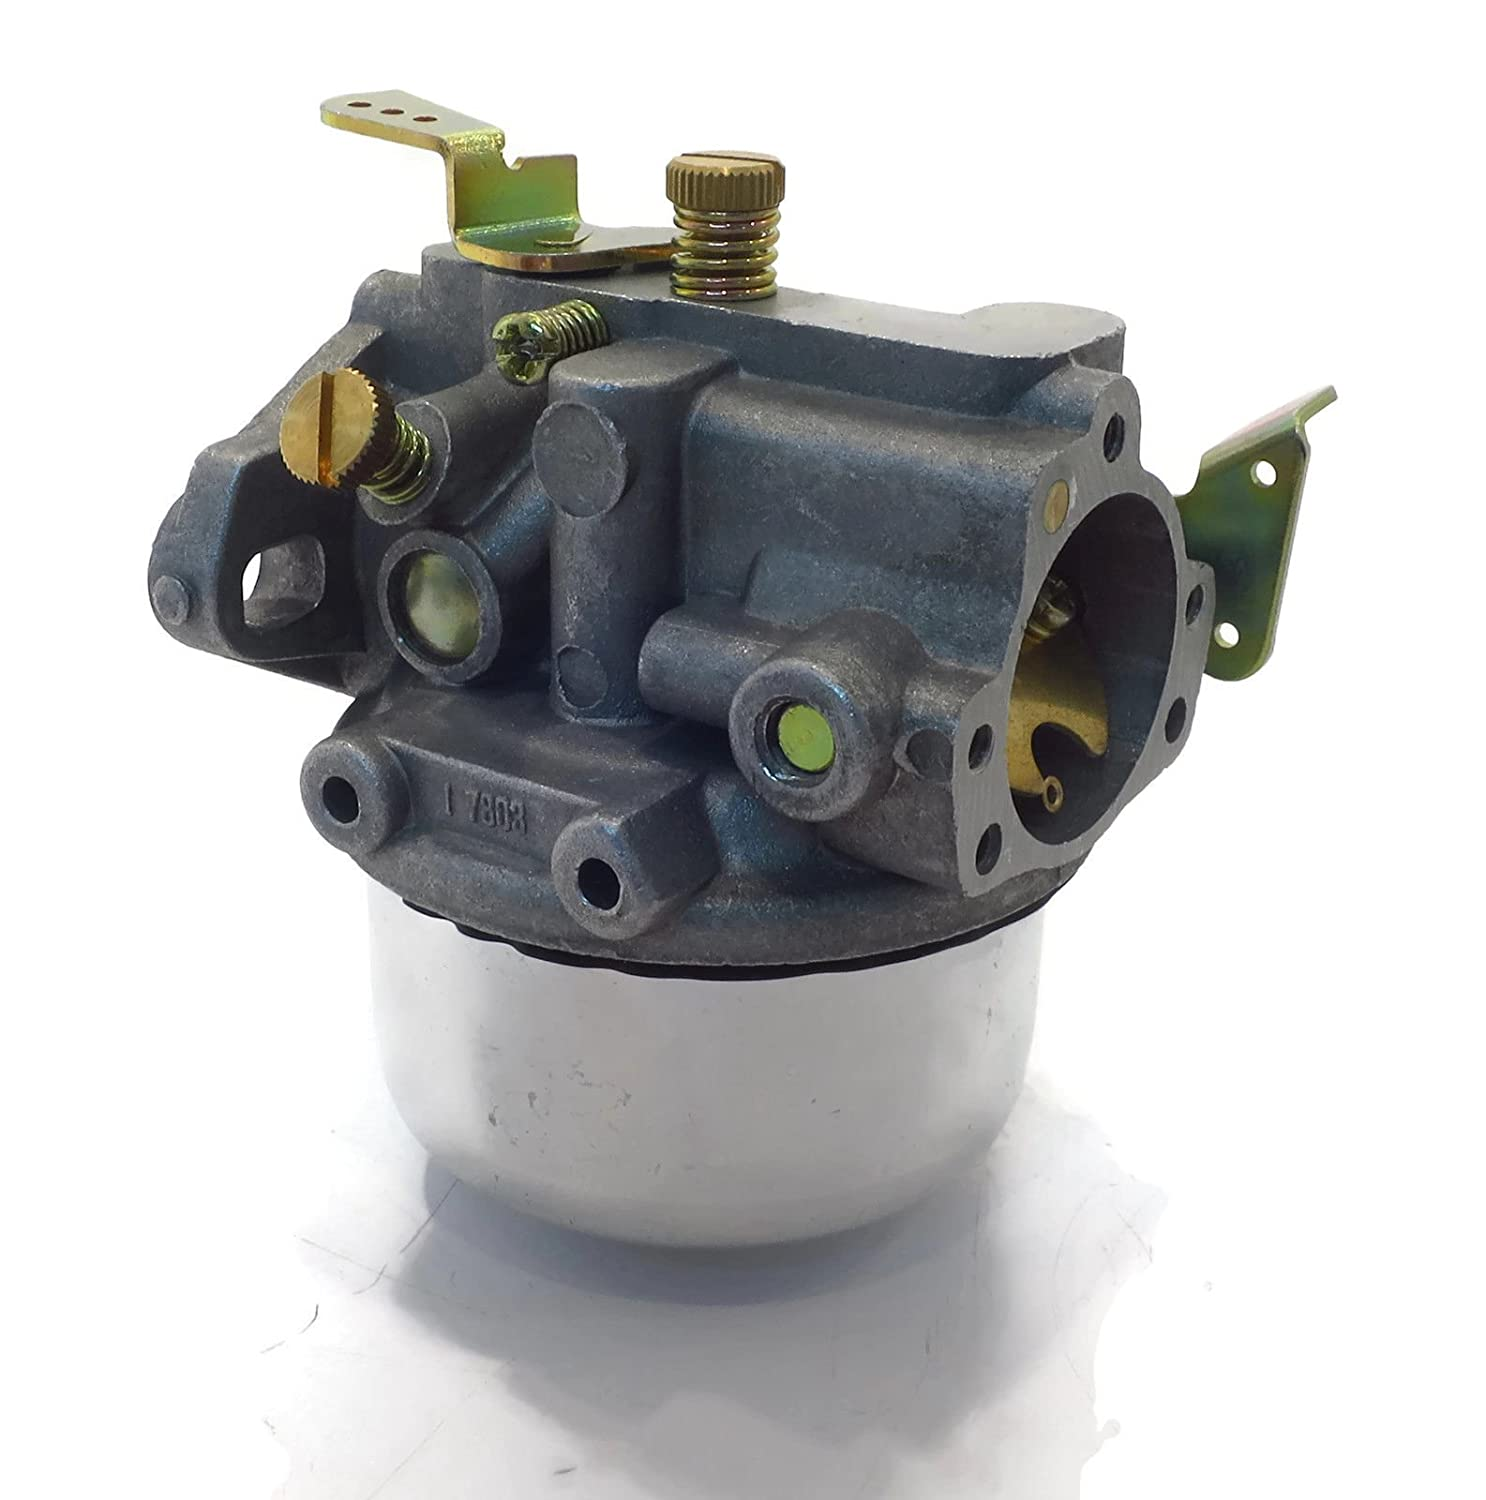 Kohler Carter 16 K90 K91 K141 K160 K161 K181 Engine Schematics Carburetor Cast Iron Motor By The Rop Shop Garden Outdoor